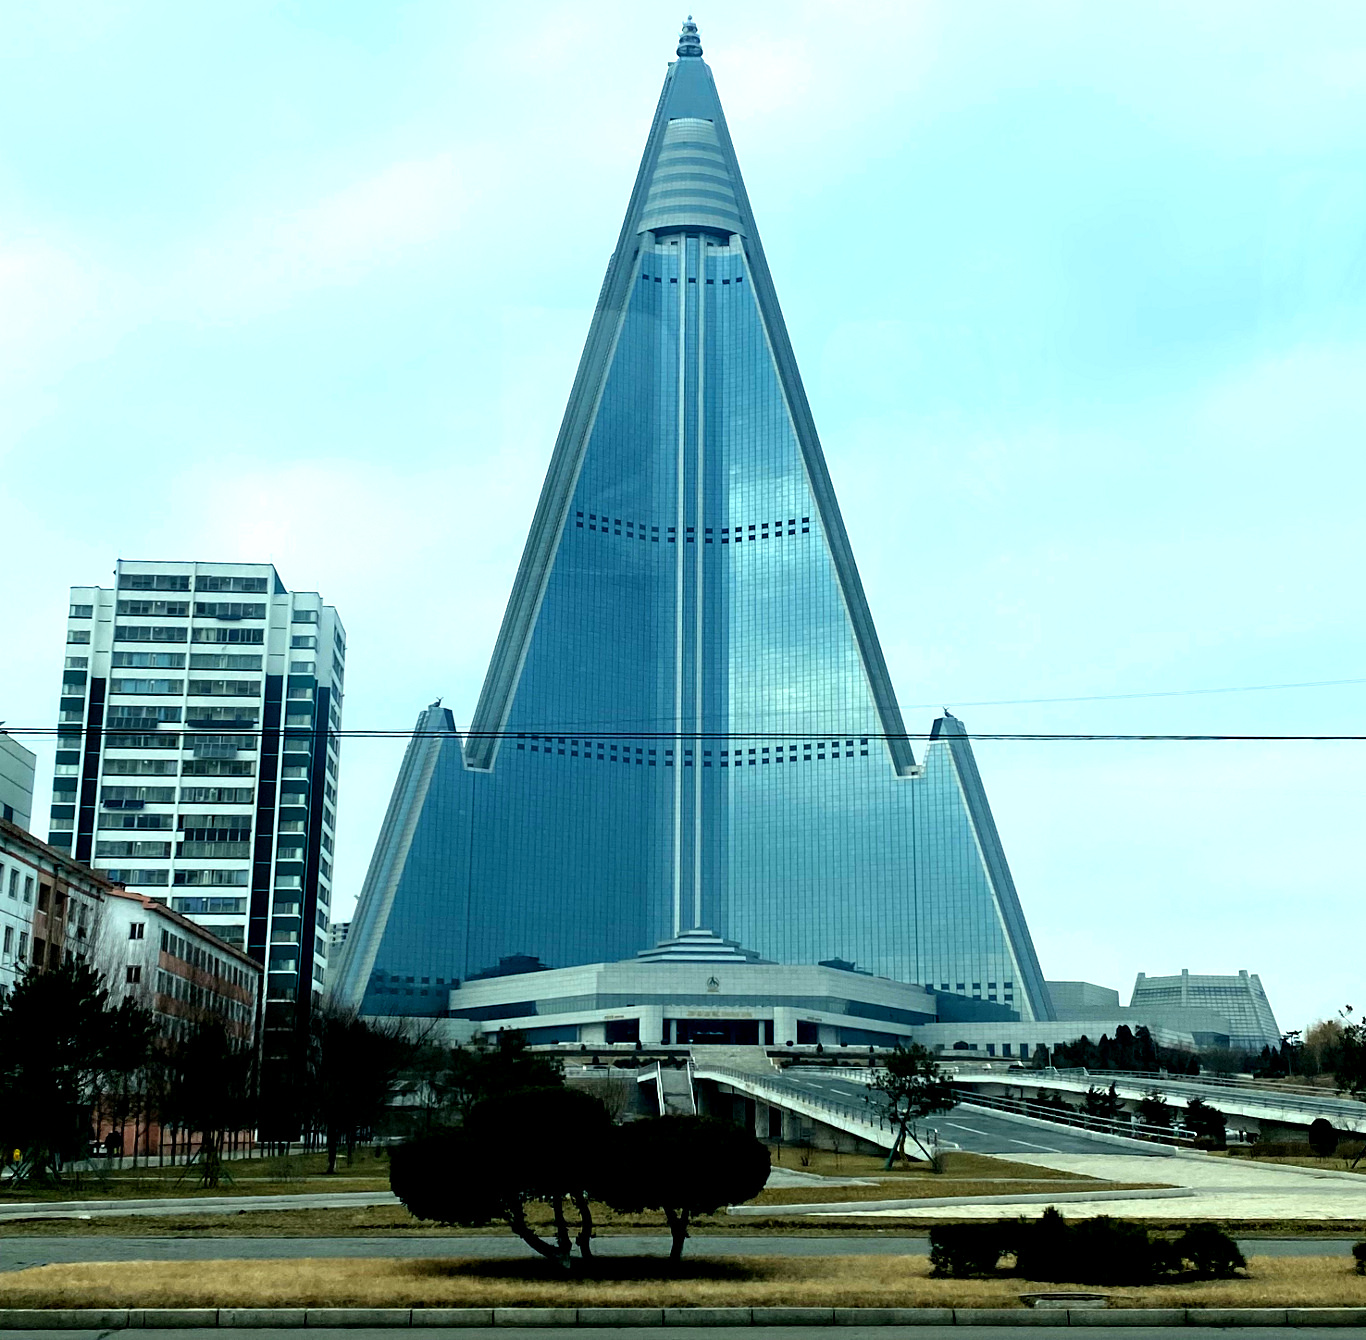 The Ryugyong hotel seen in 2020. Tour arranged by KTG Tours